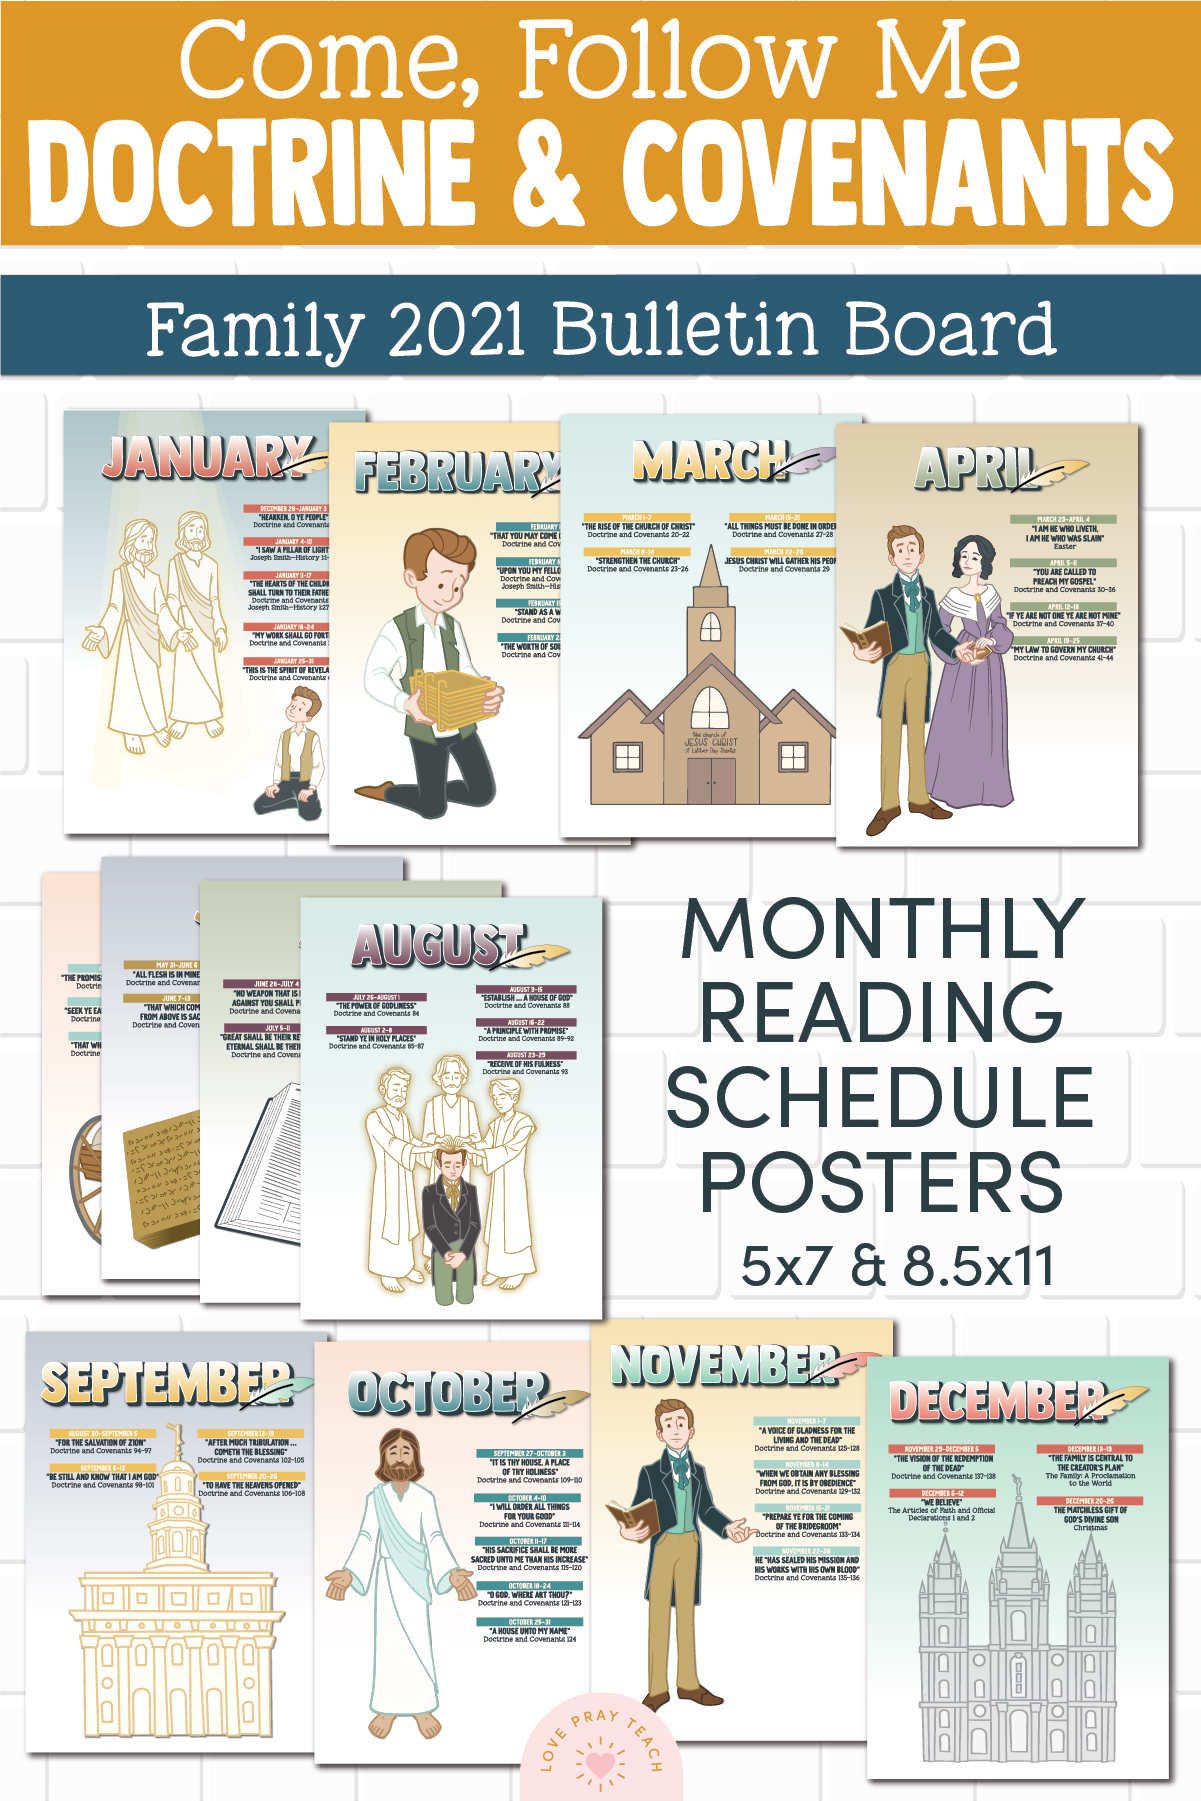 2021 Doctrine & Covenants Family Bulletin Board Printables for Come, Follow Me www.LovePrayTeach.com